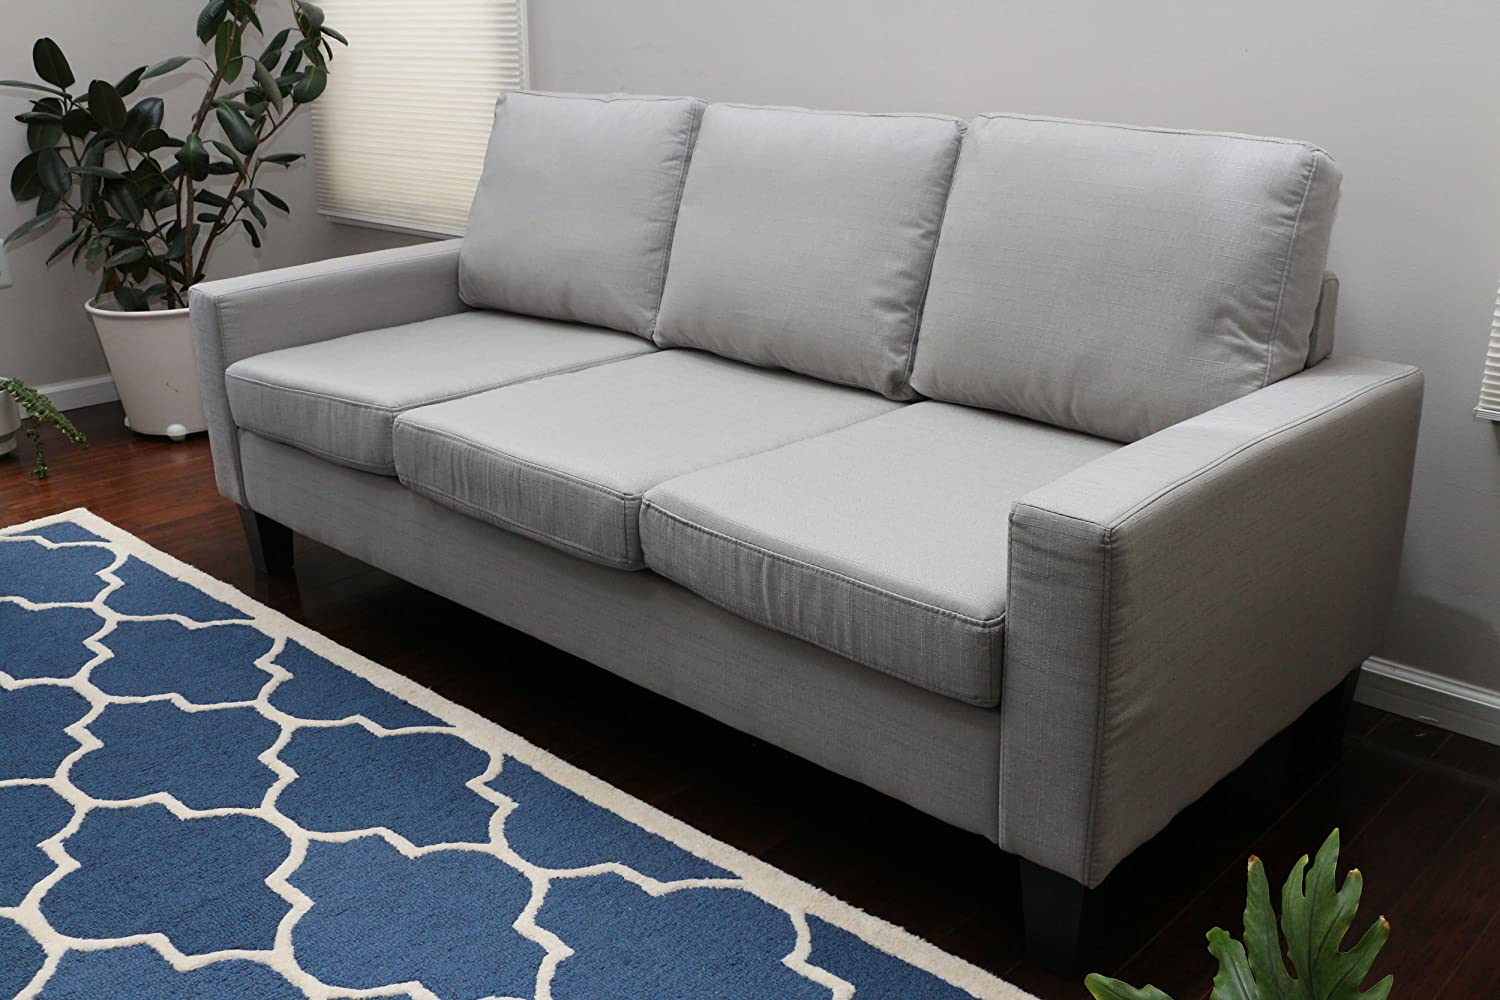 Cheap couches for sale under 200 top couches review for Affordable couches for sale